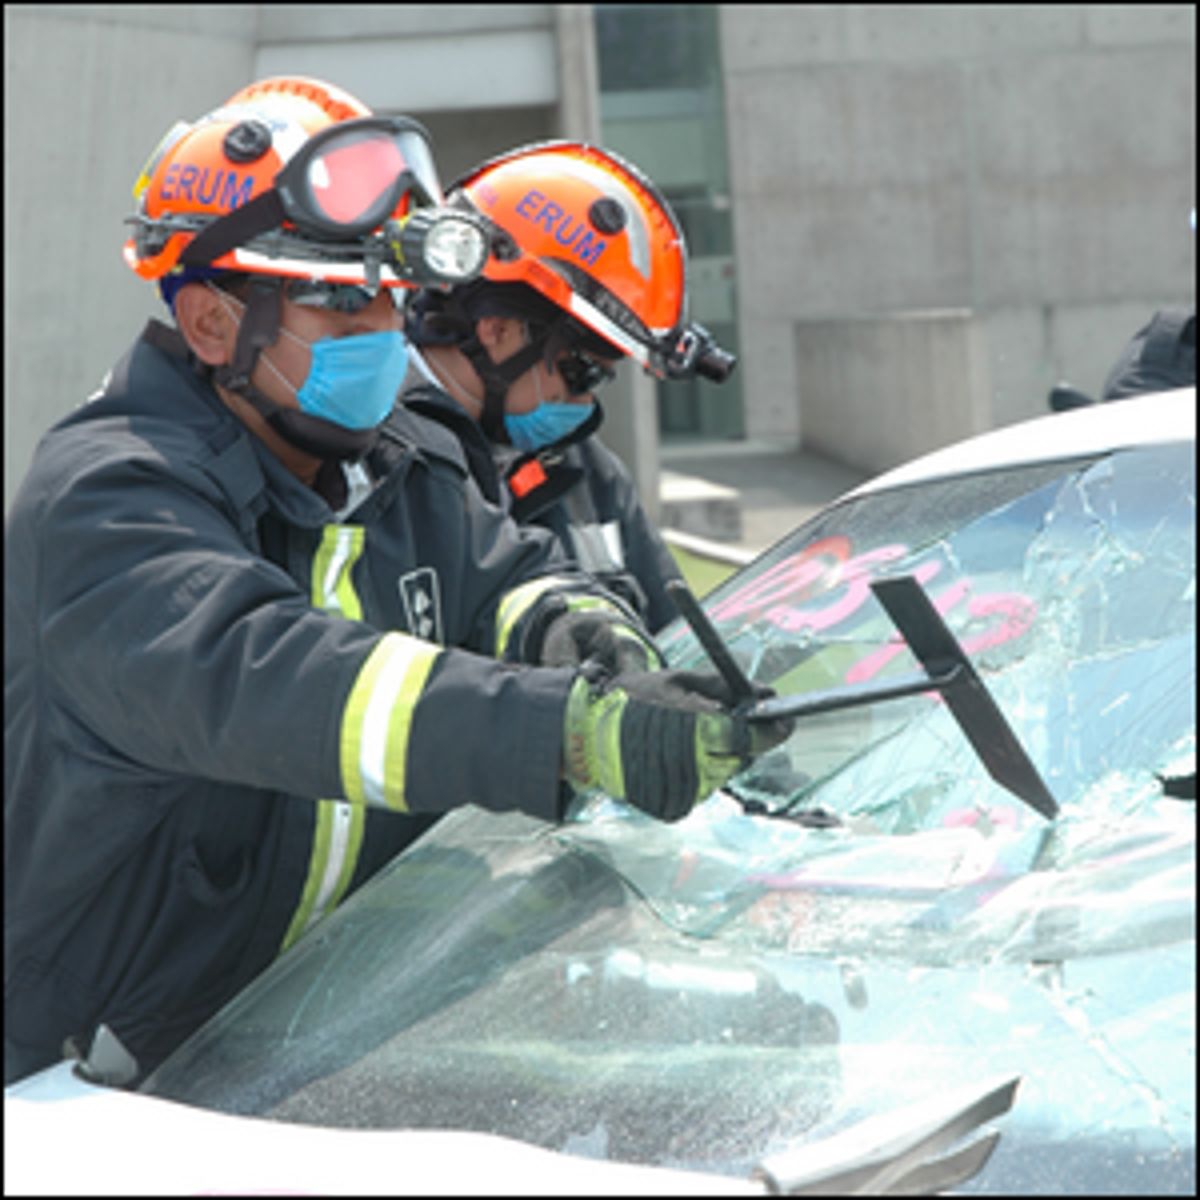 Firefighters breaking through a laminated windshield.